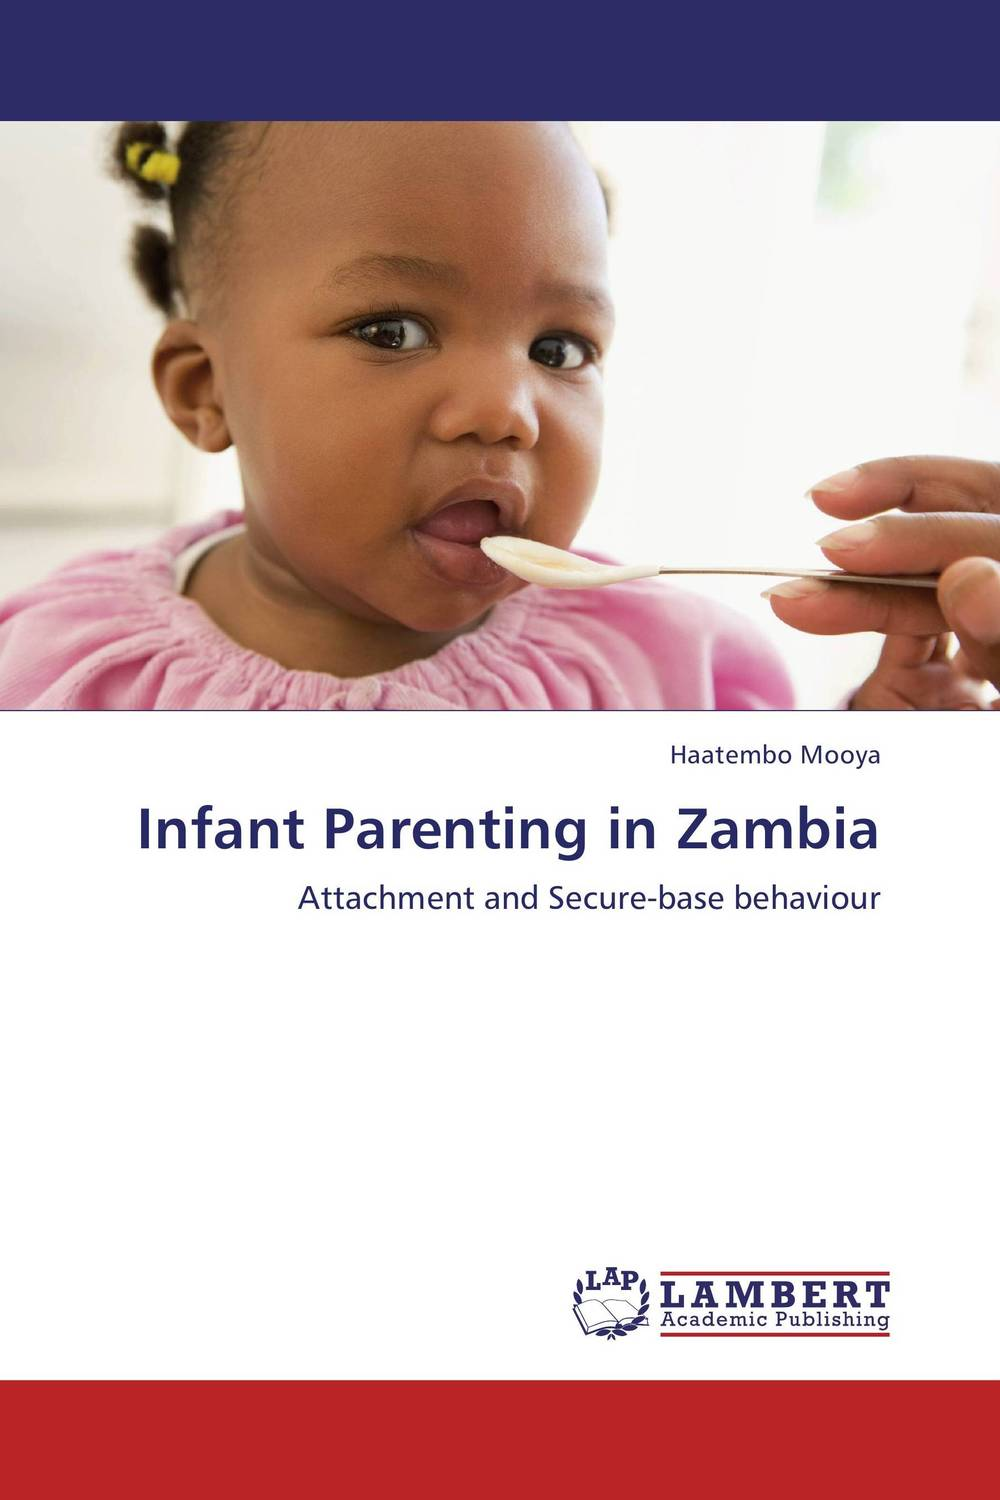 Infant Parenting in Zambia infant parenting in zambia